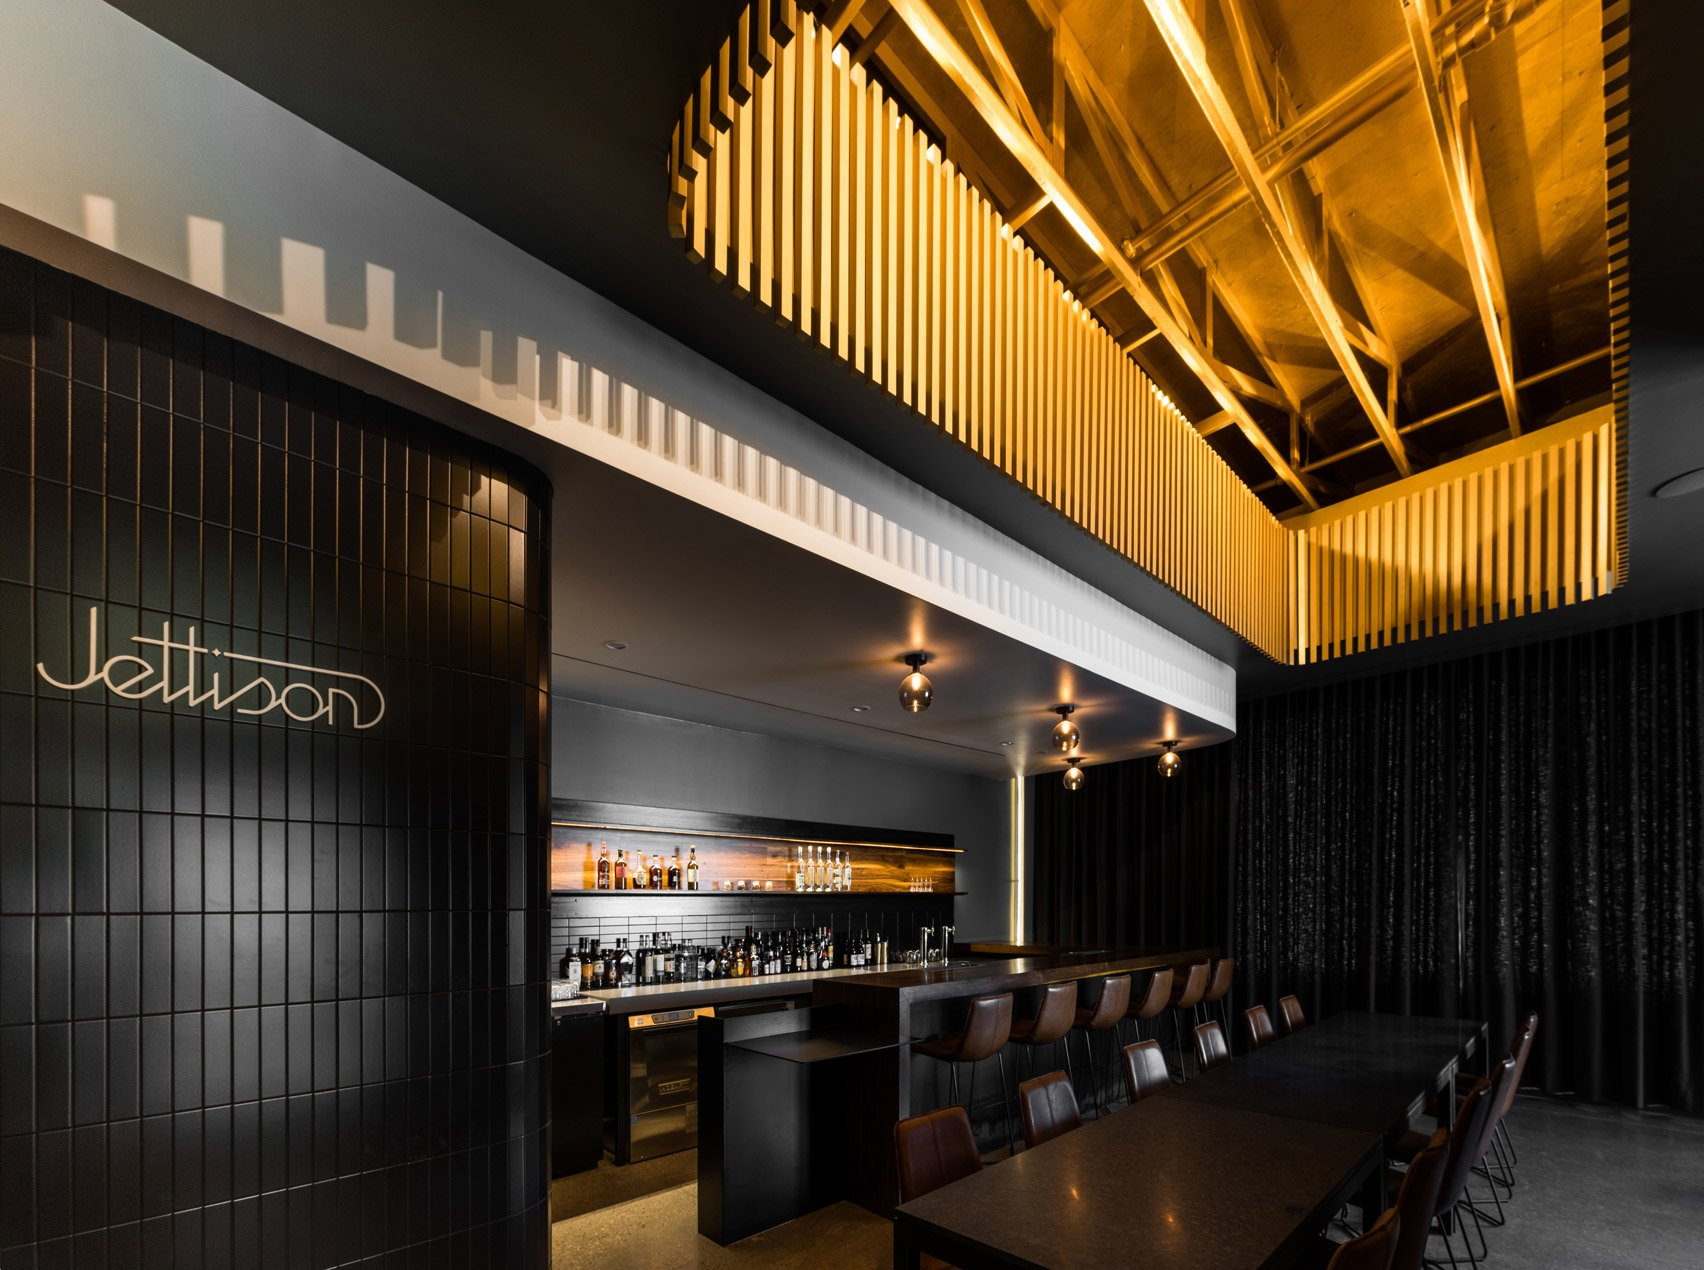 houndstooth-coffee-and-jettison-cocktail-bar-official-sylvan-thirty-texas-usa_dezeen_1704_col_12